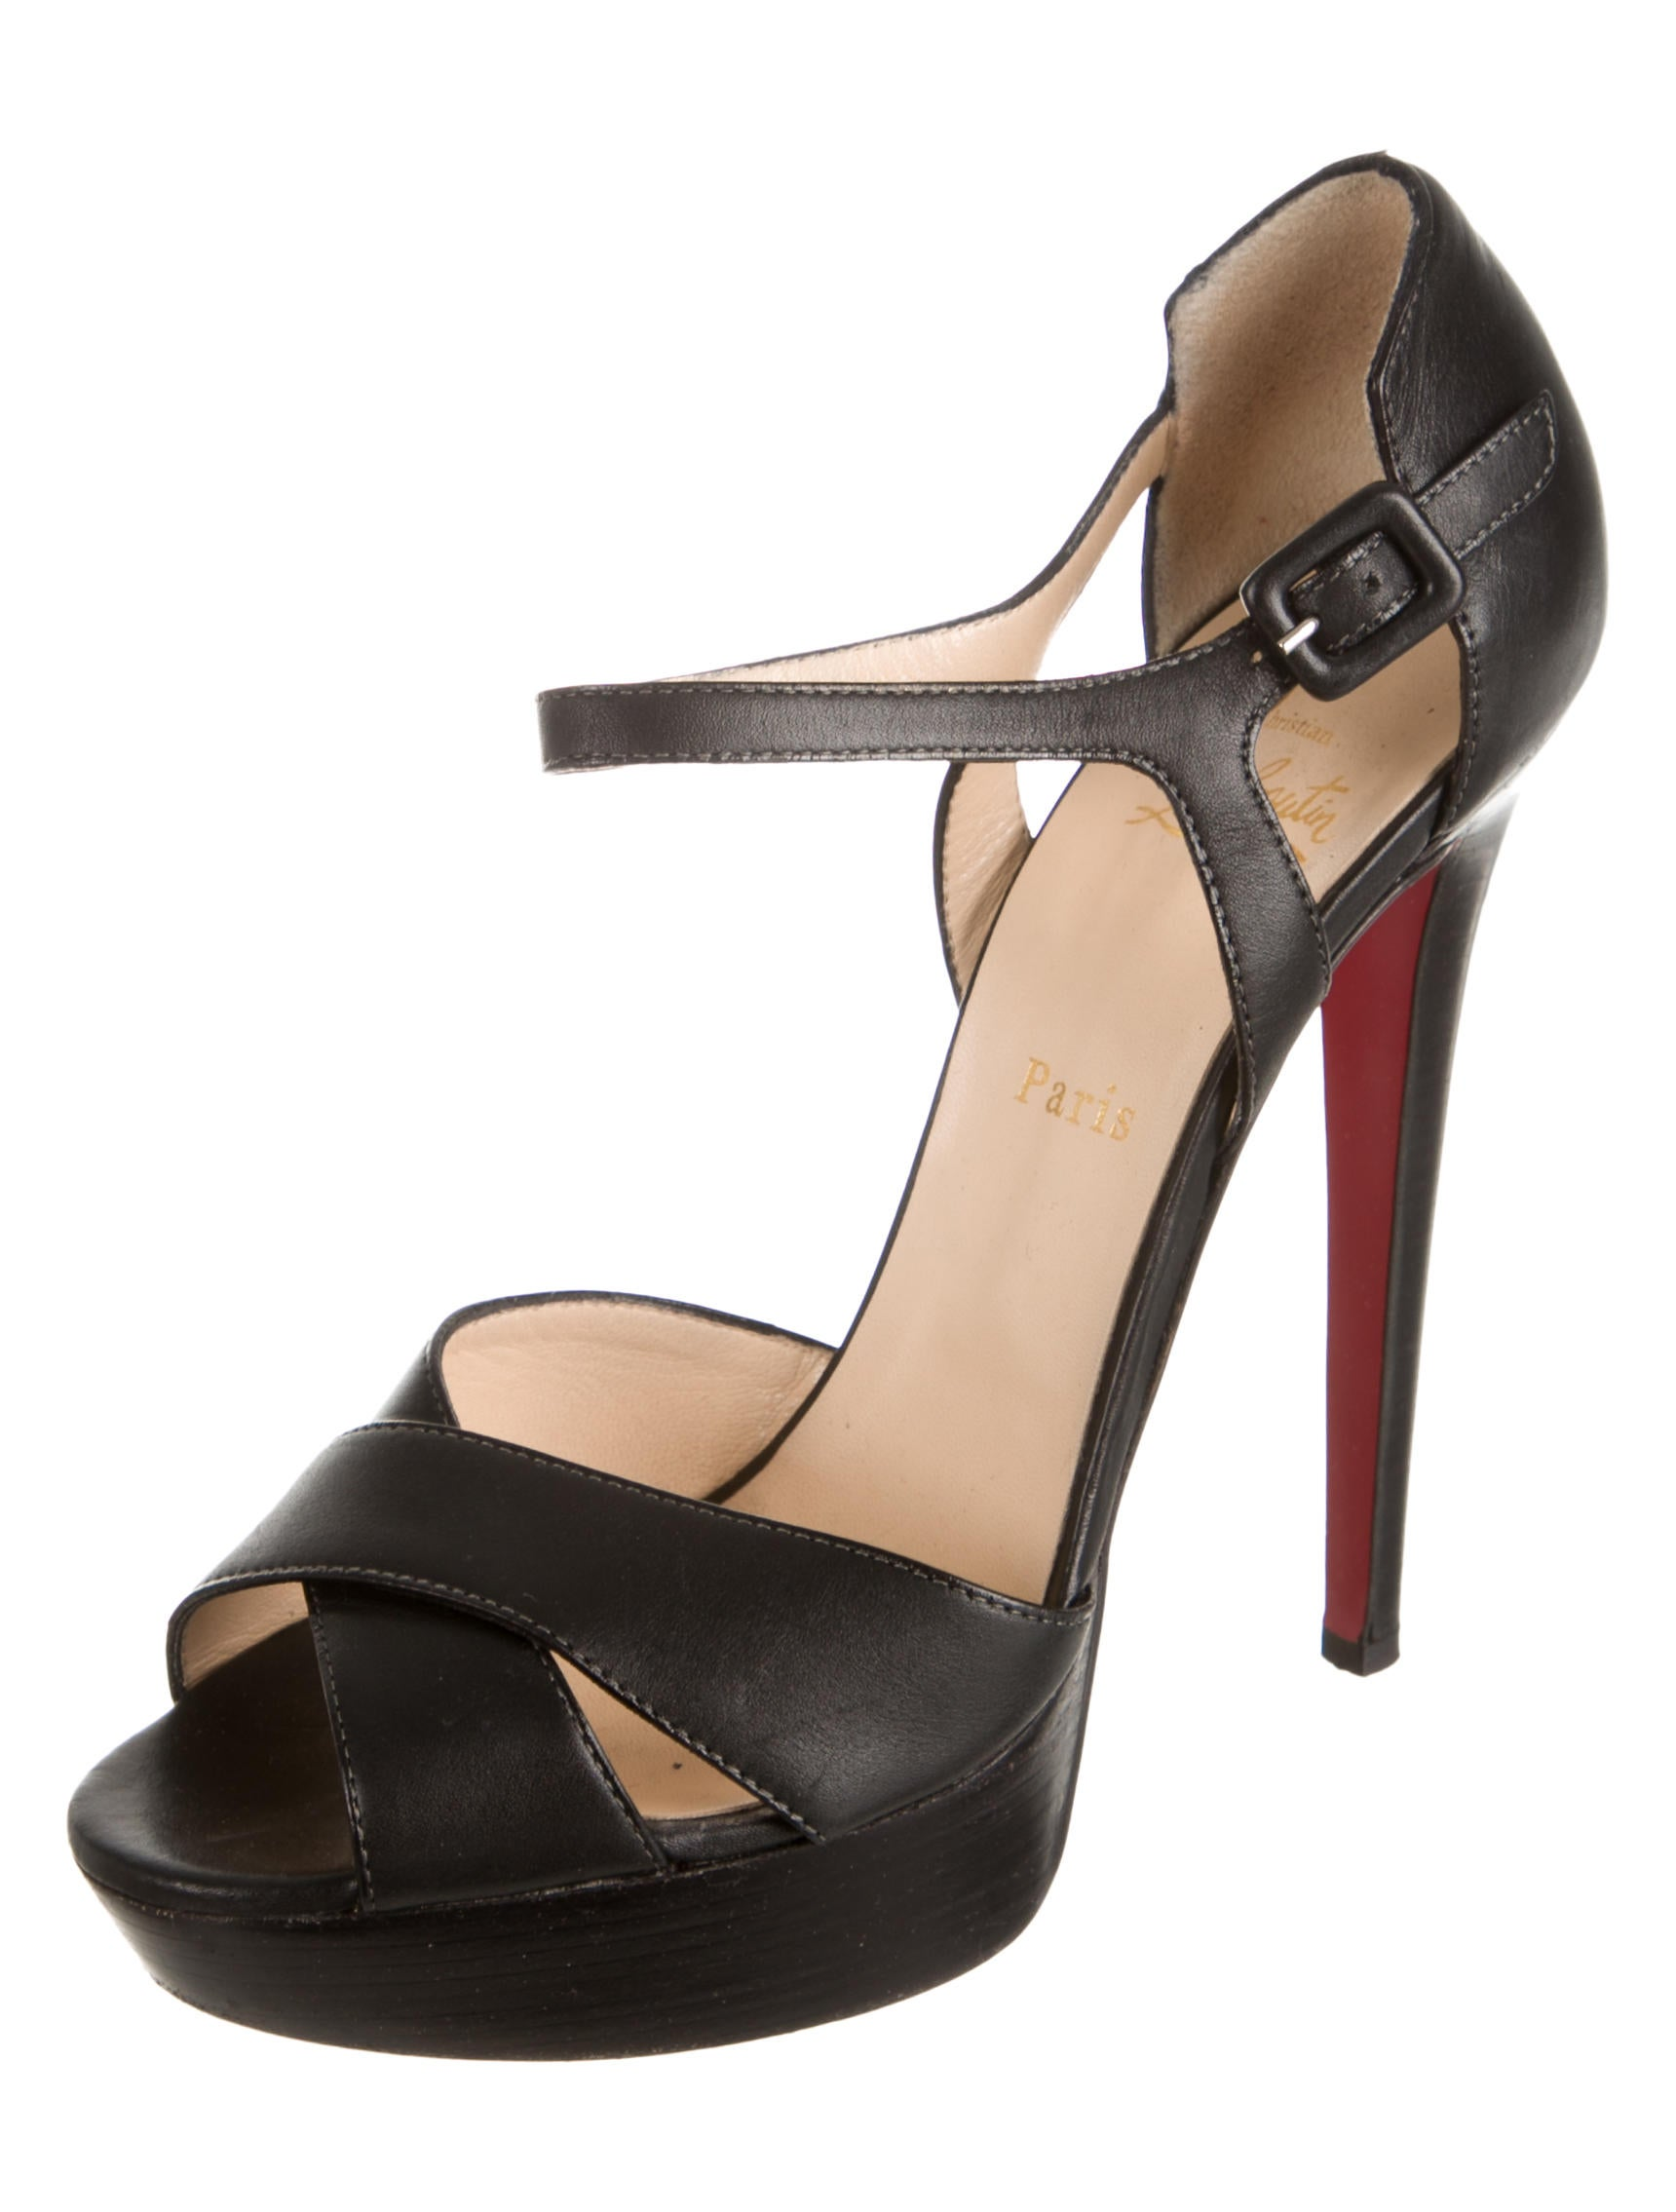 replica red bottom sneakers - christian louboutin sporting 140 platform sandals, black louboutins